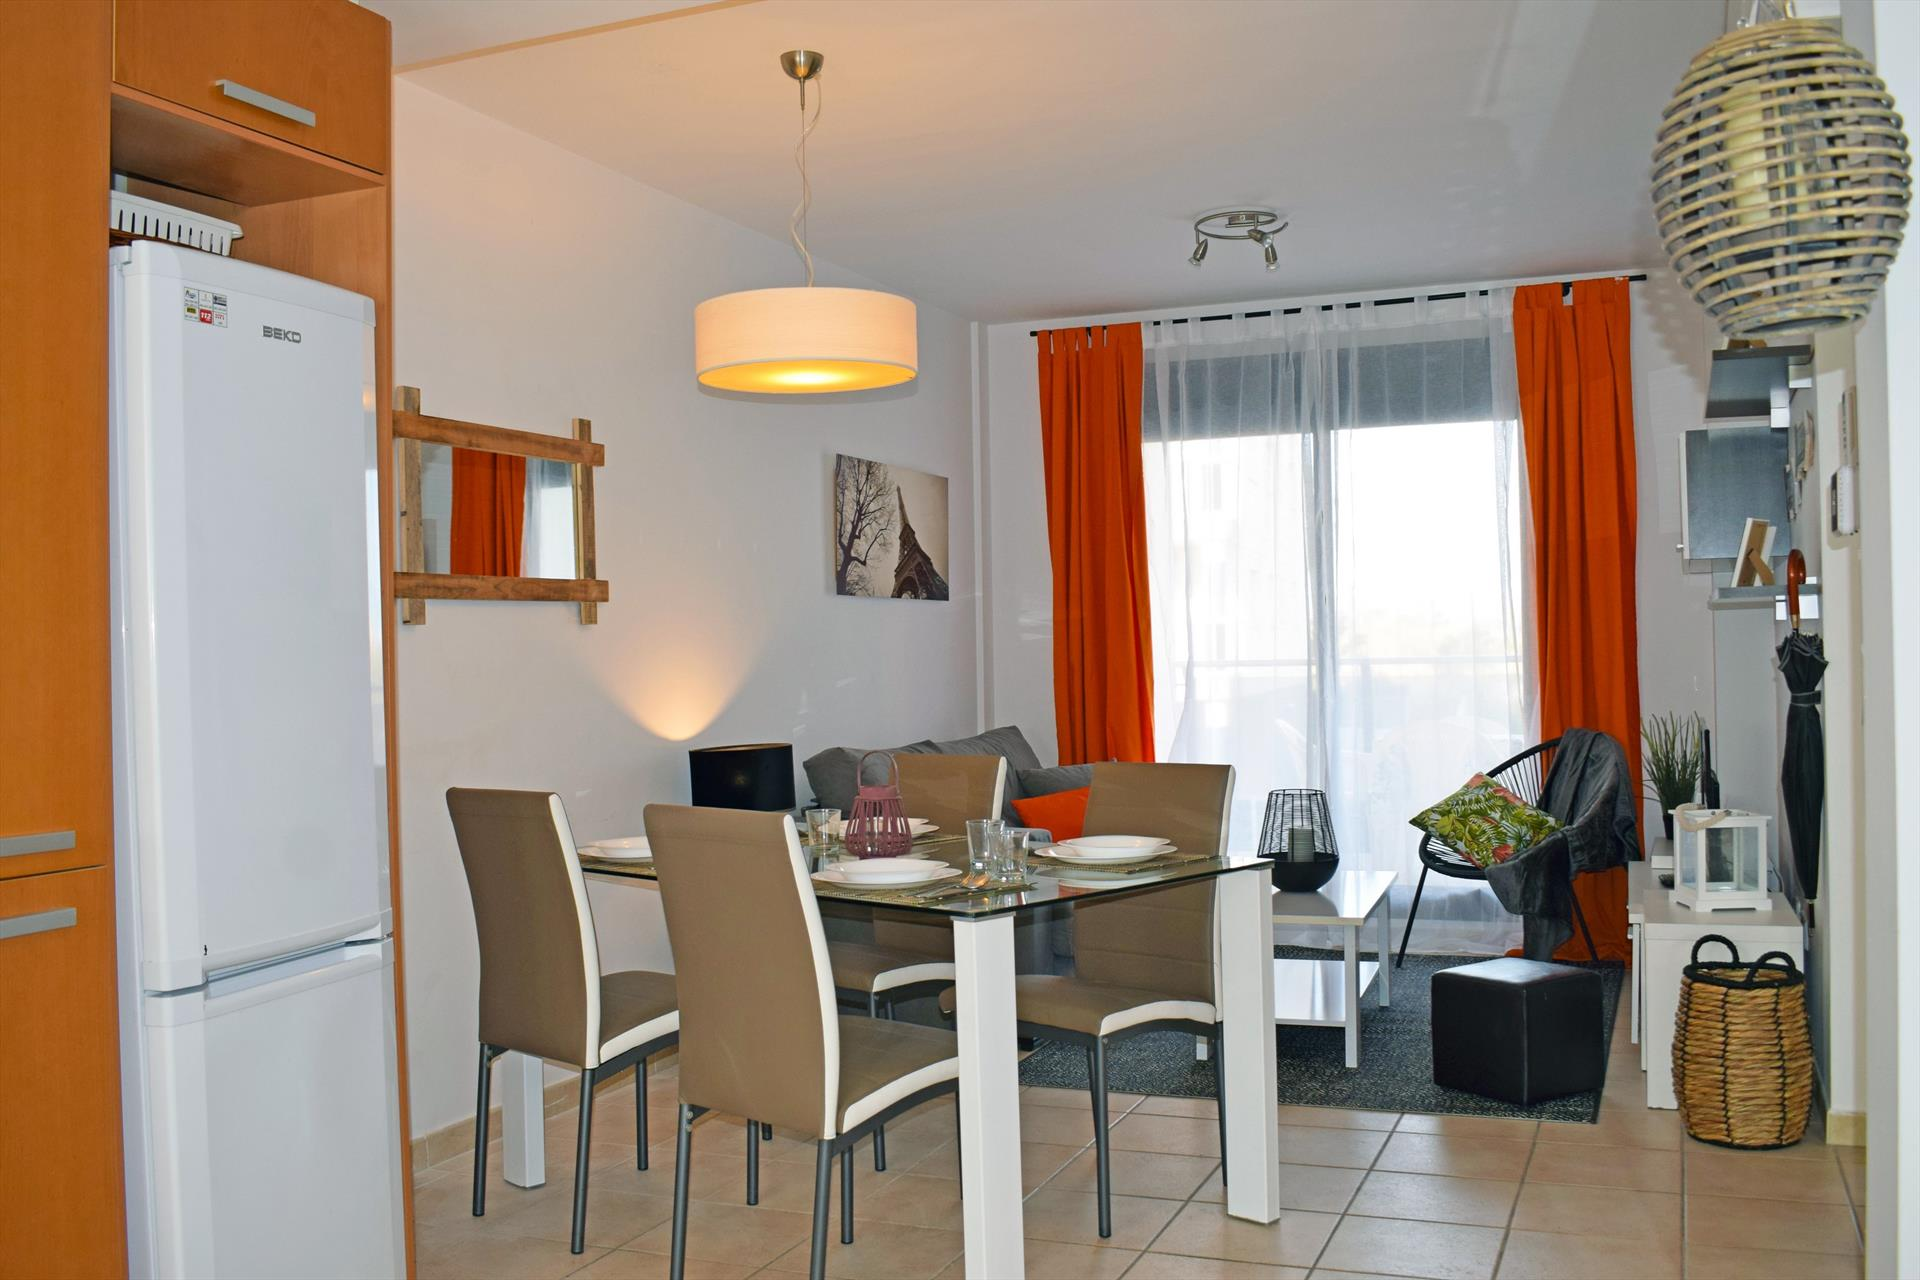 AP3 Migjorn Mar de Bellreguard, Beautiful and cheerful apartment in Bellreguard, on the Costa Blanca, Spain for 6 persons.....